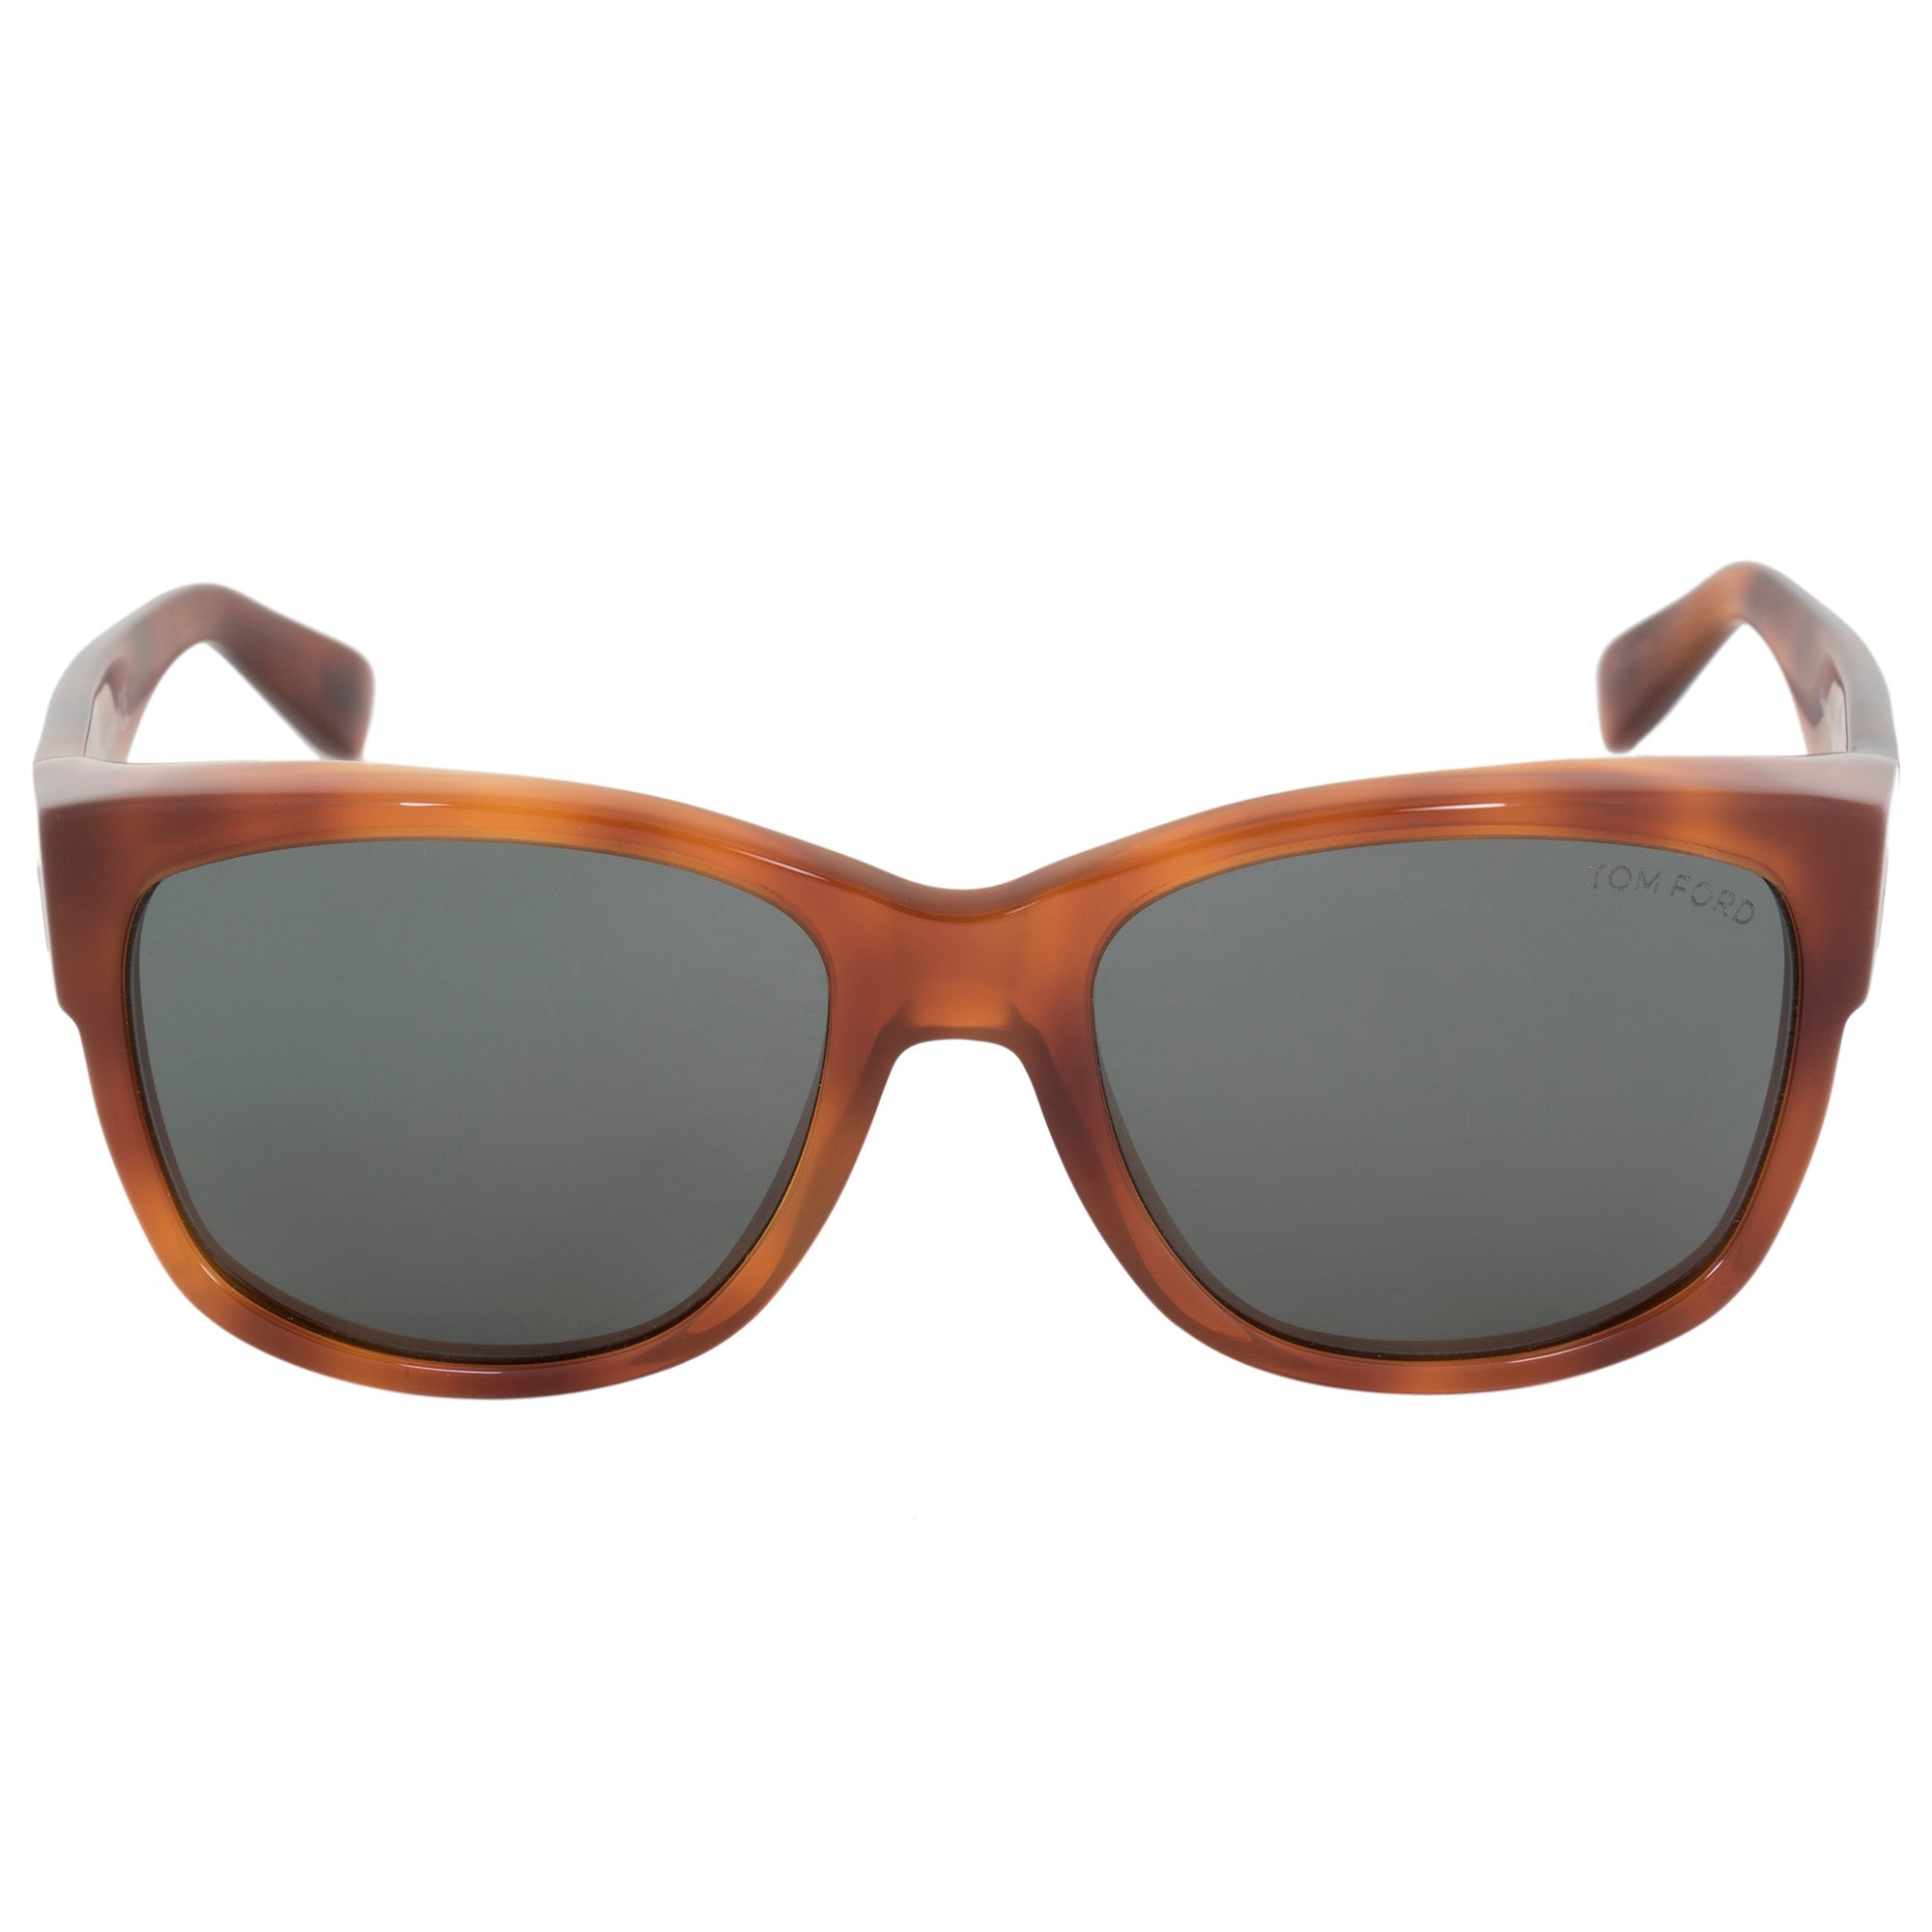 b4cd63eaaec4 Shop Tom Ford Carson Square Sunglasses FT0441 53N 56 - Free Shipping Today  - Overstock - 19622358